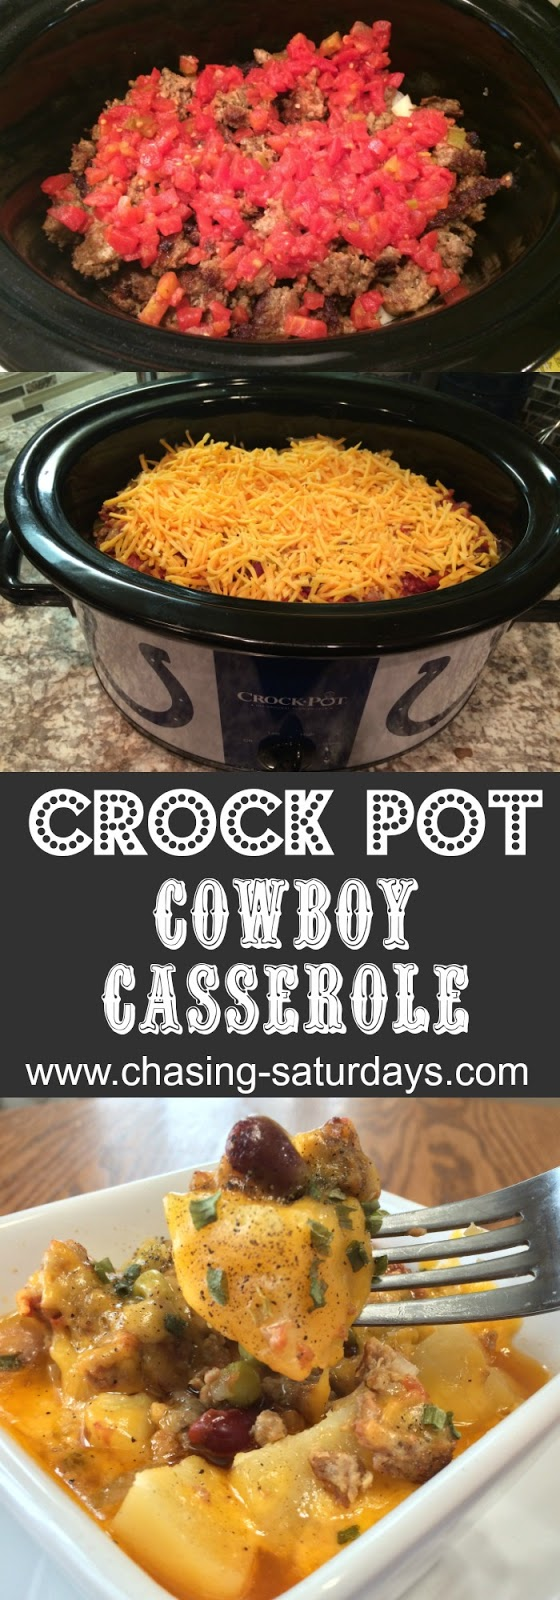 Chasing Saturdays, Crock Pot Cowboy Casserole is a hearty meal and combines all of our favorite ingredients into one dish.